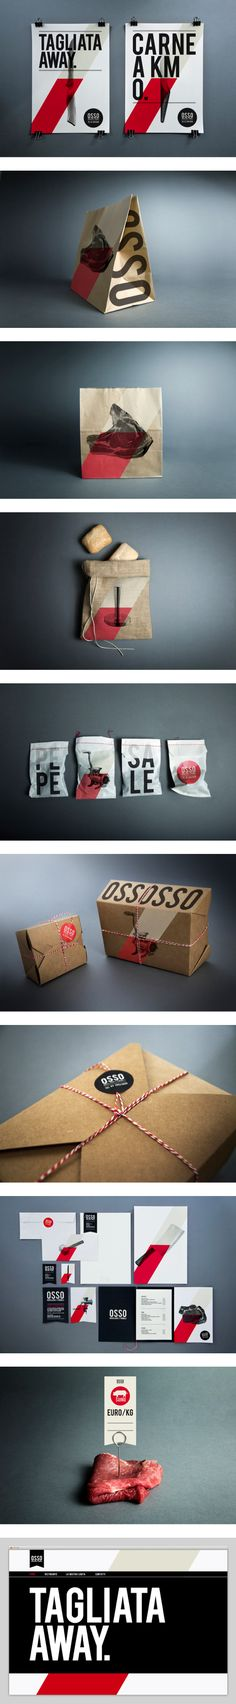 OSSO, a butcher shop in Milan, by Luca Fontana - Food Branding and Packaging